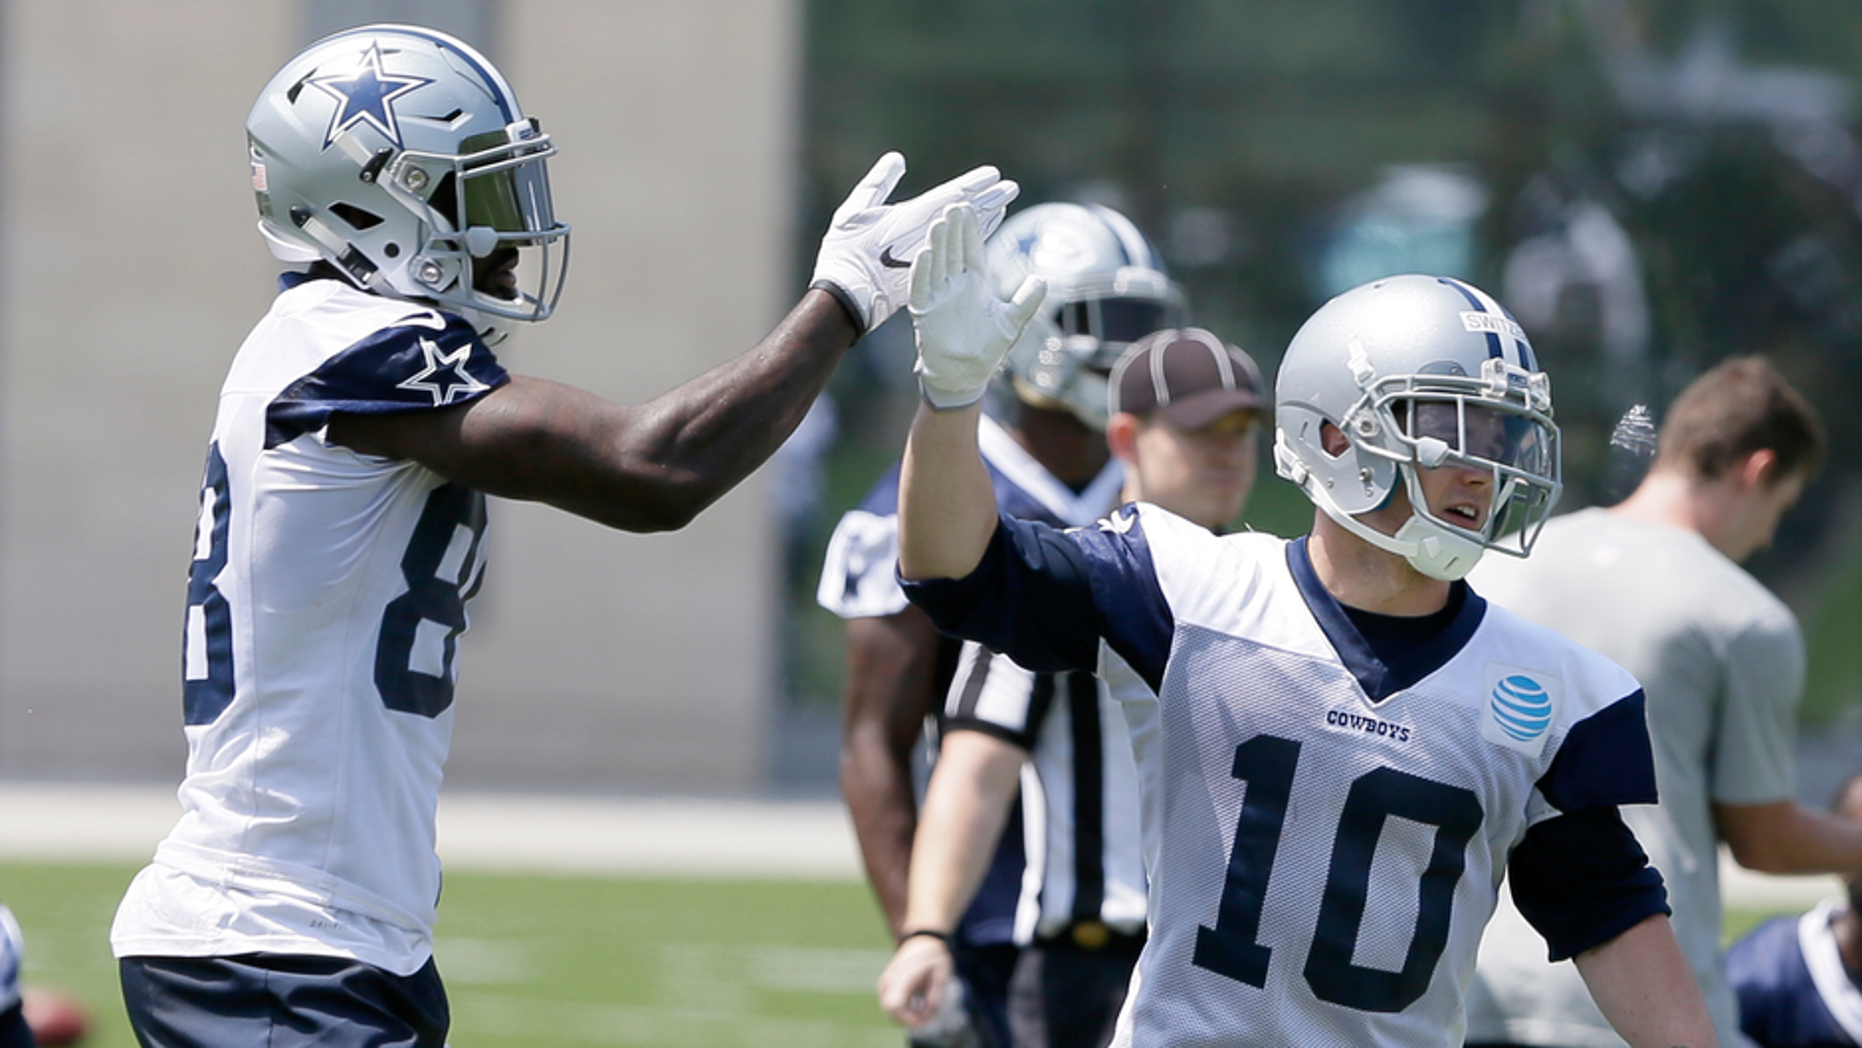 Big Brother Bryant Cowboys Star Mentors Rookie Switzer